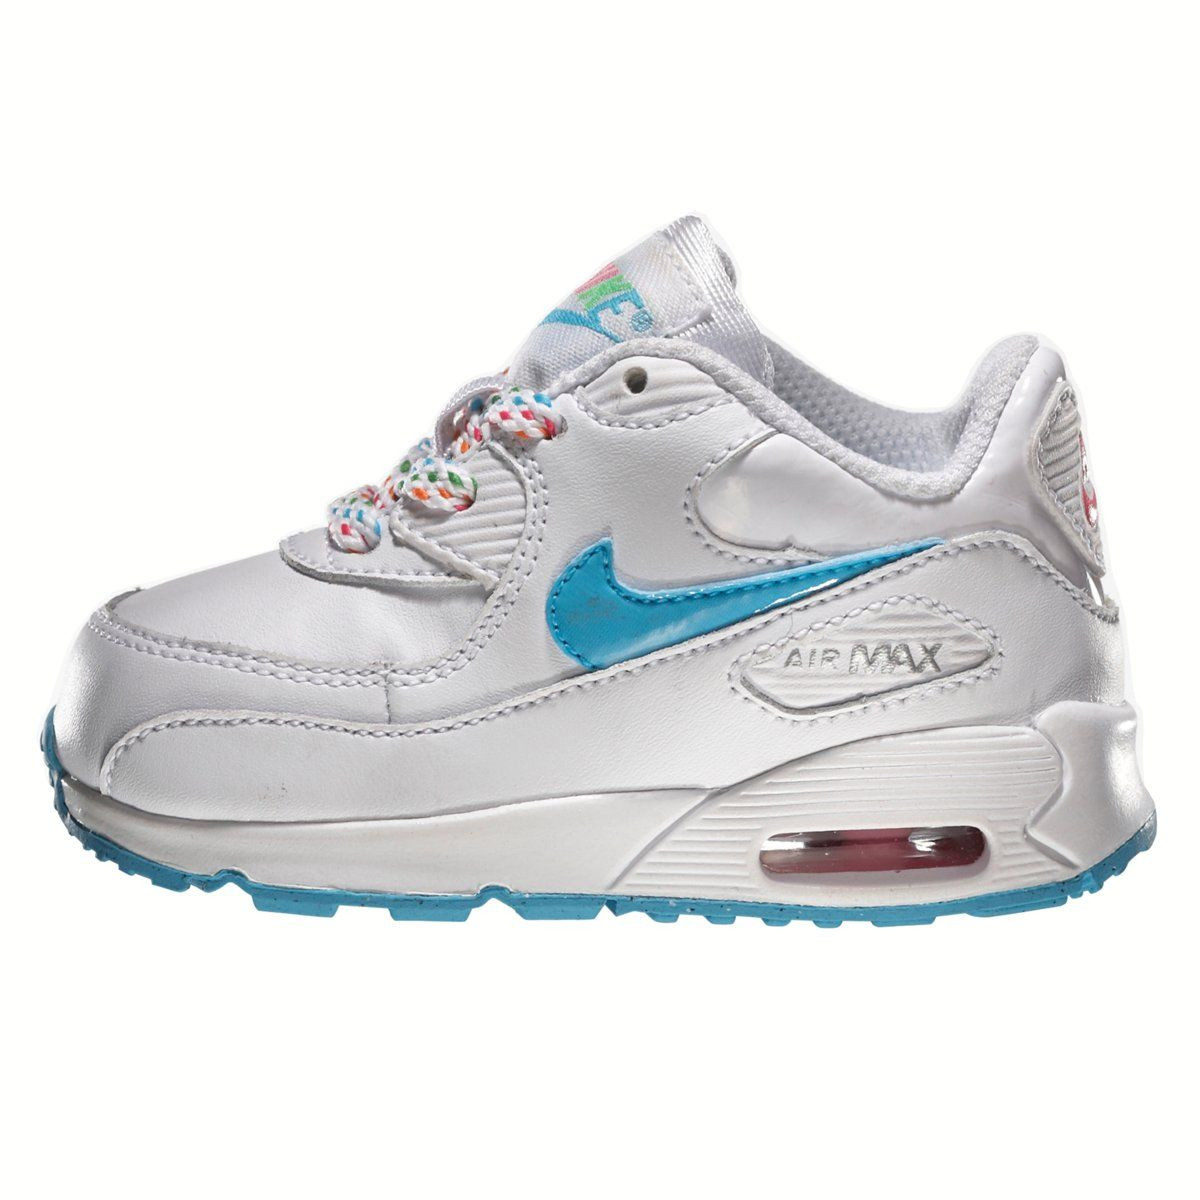 31536754edb Basket Air Max 90 NIKE   Avis